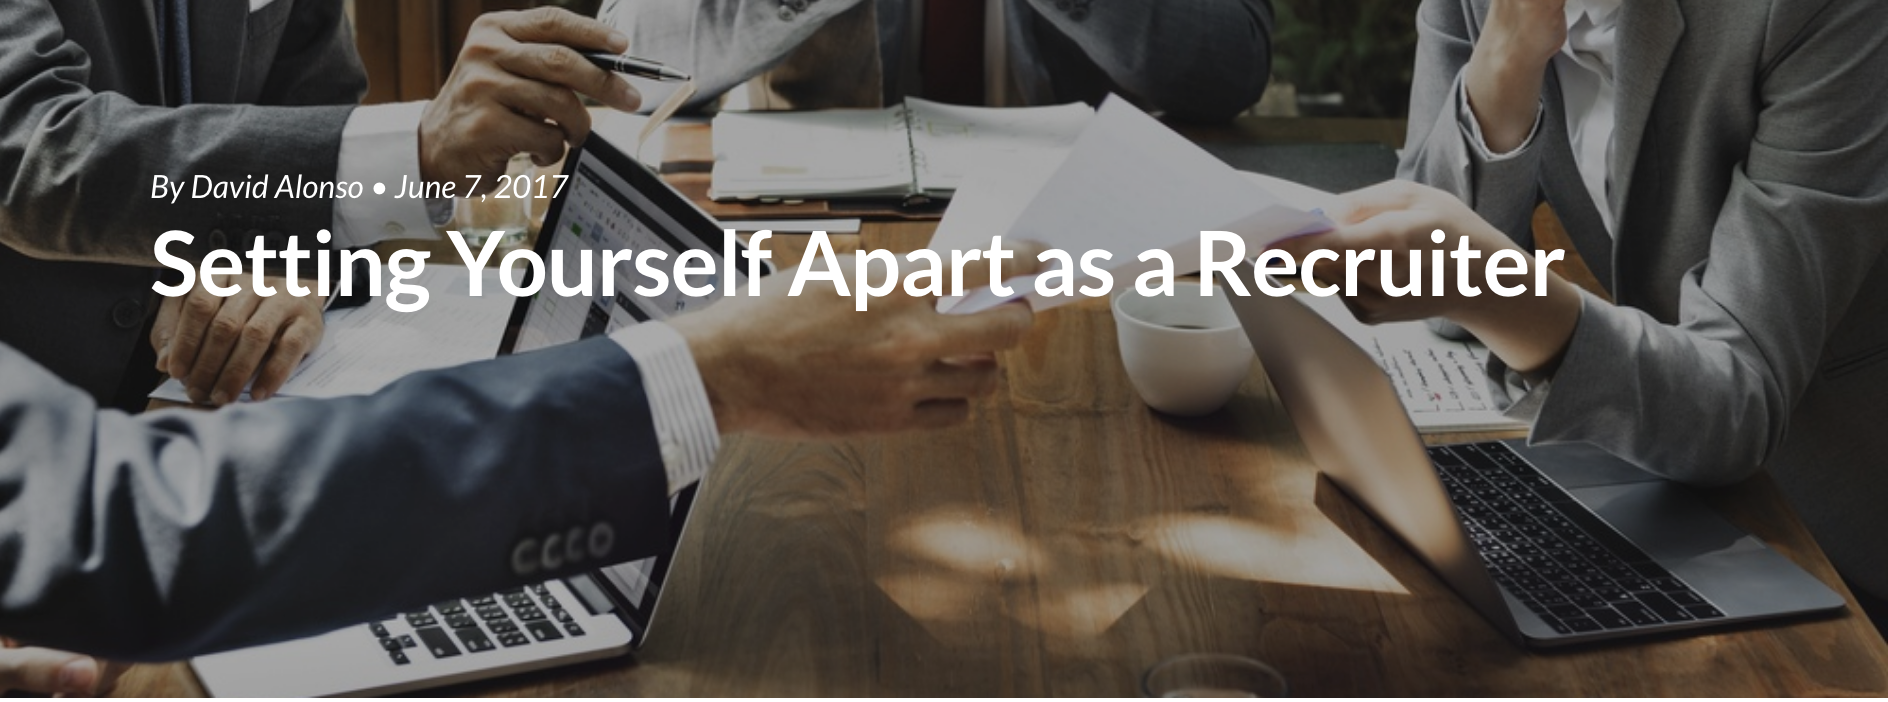 Setting Yourself Apart as a Recruiter